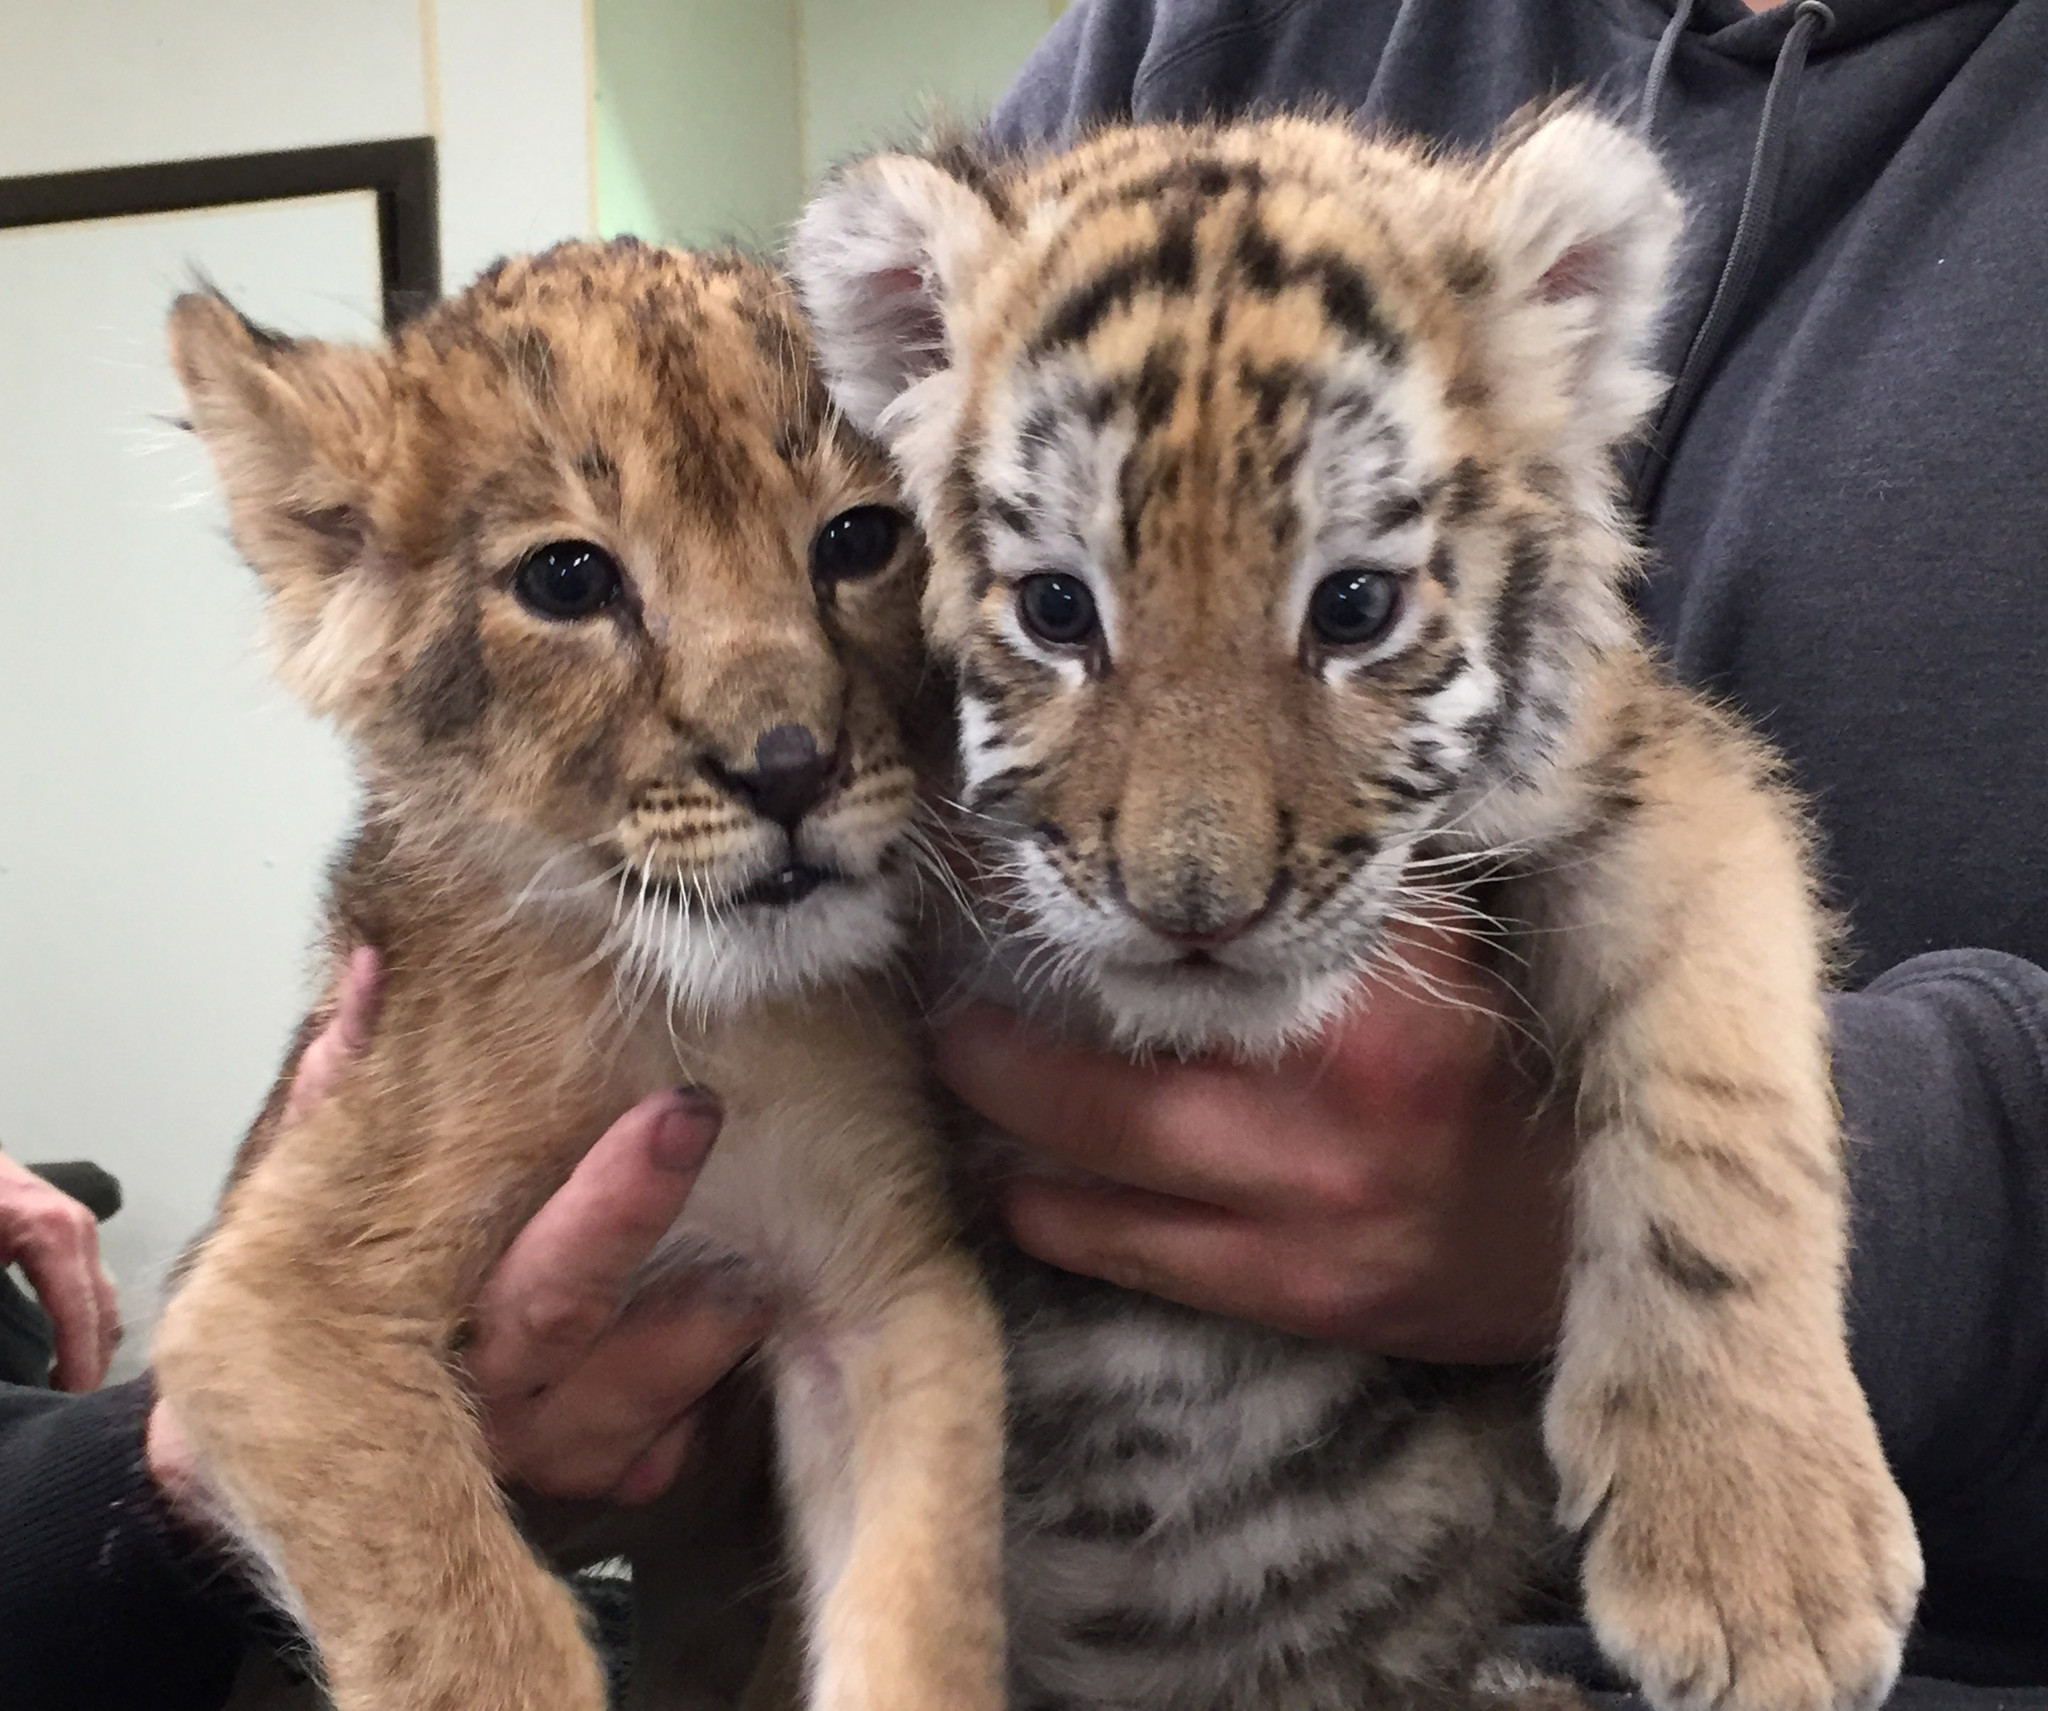 Baby tiger and lion being raised together at Six Flags - The Morning Call